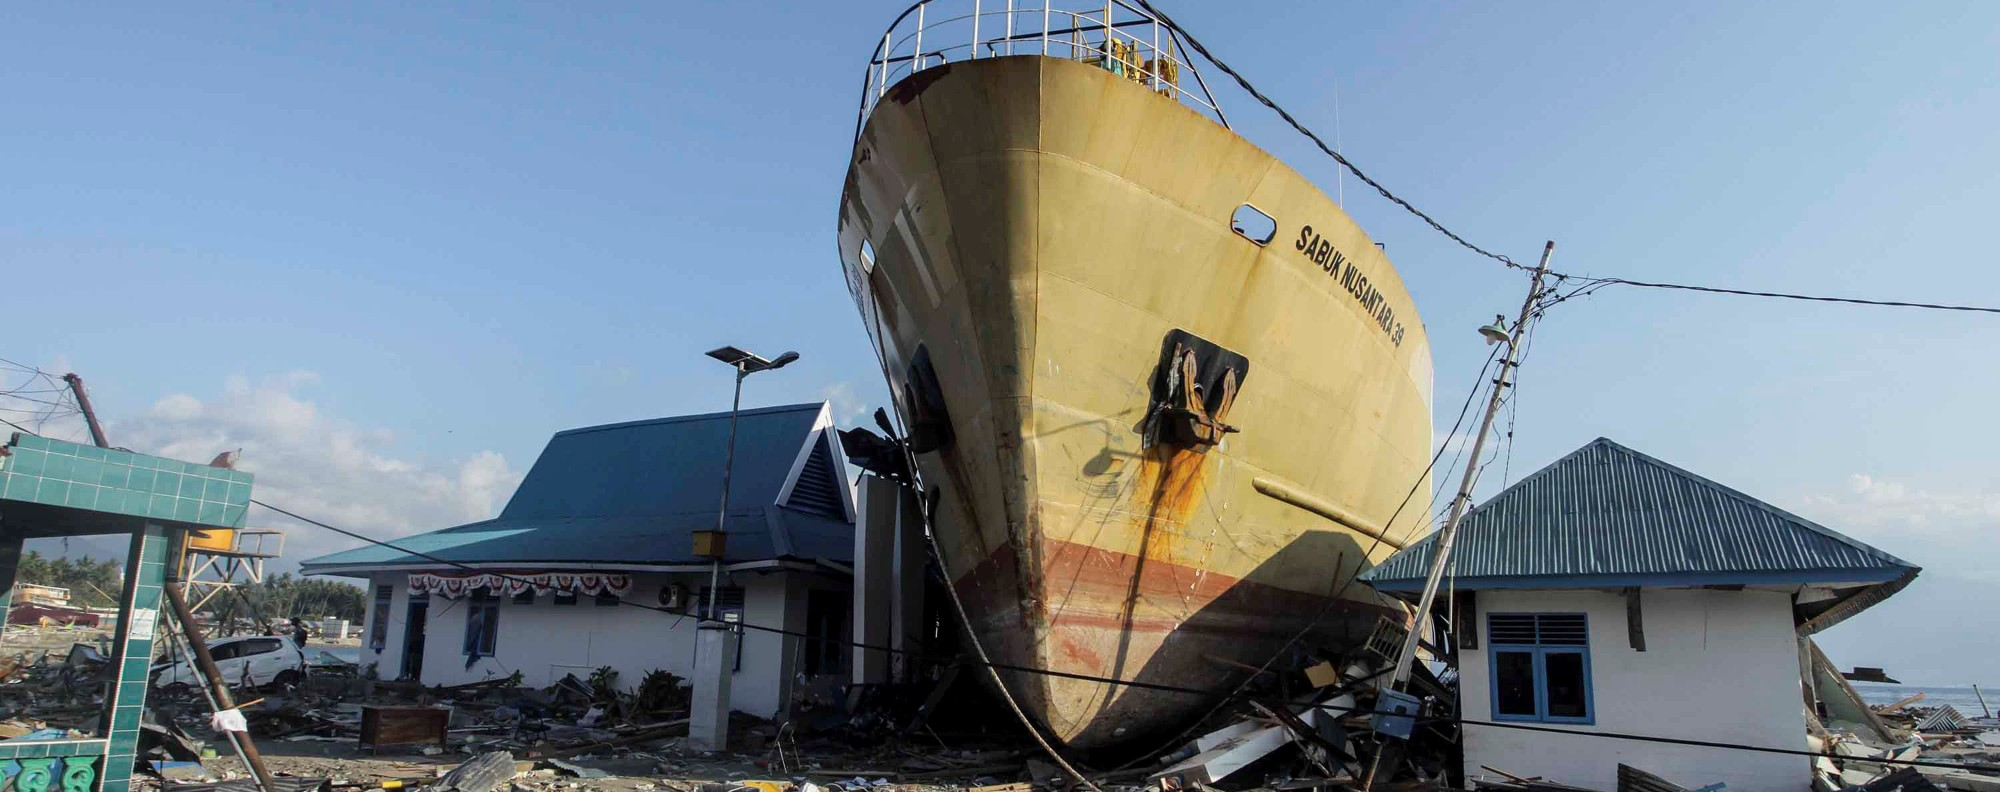 Tsunami damage in Central Sulawesi. Photo: Reuters